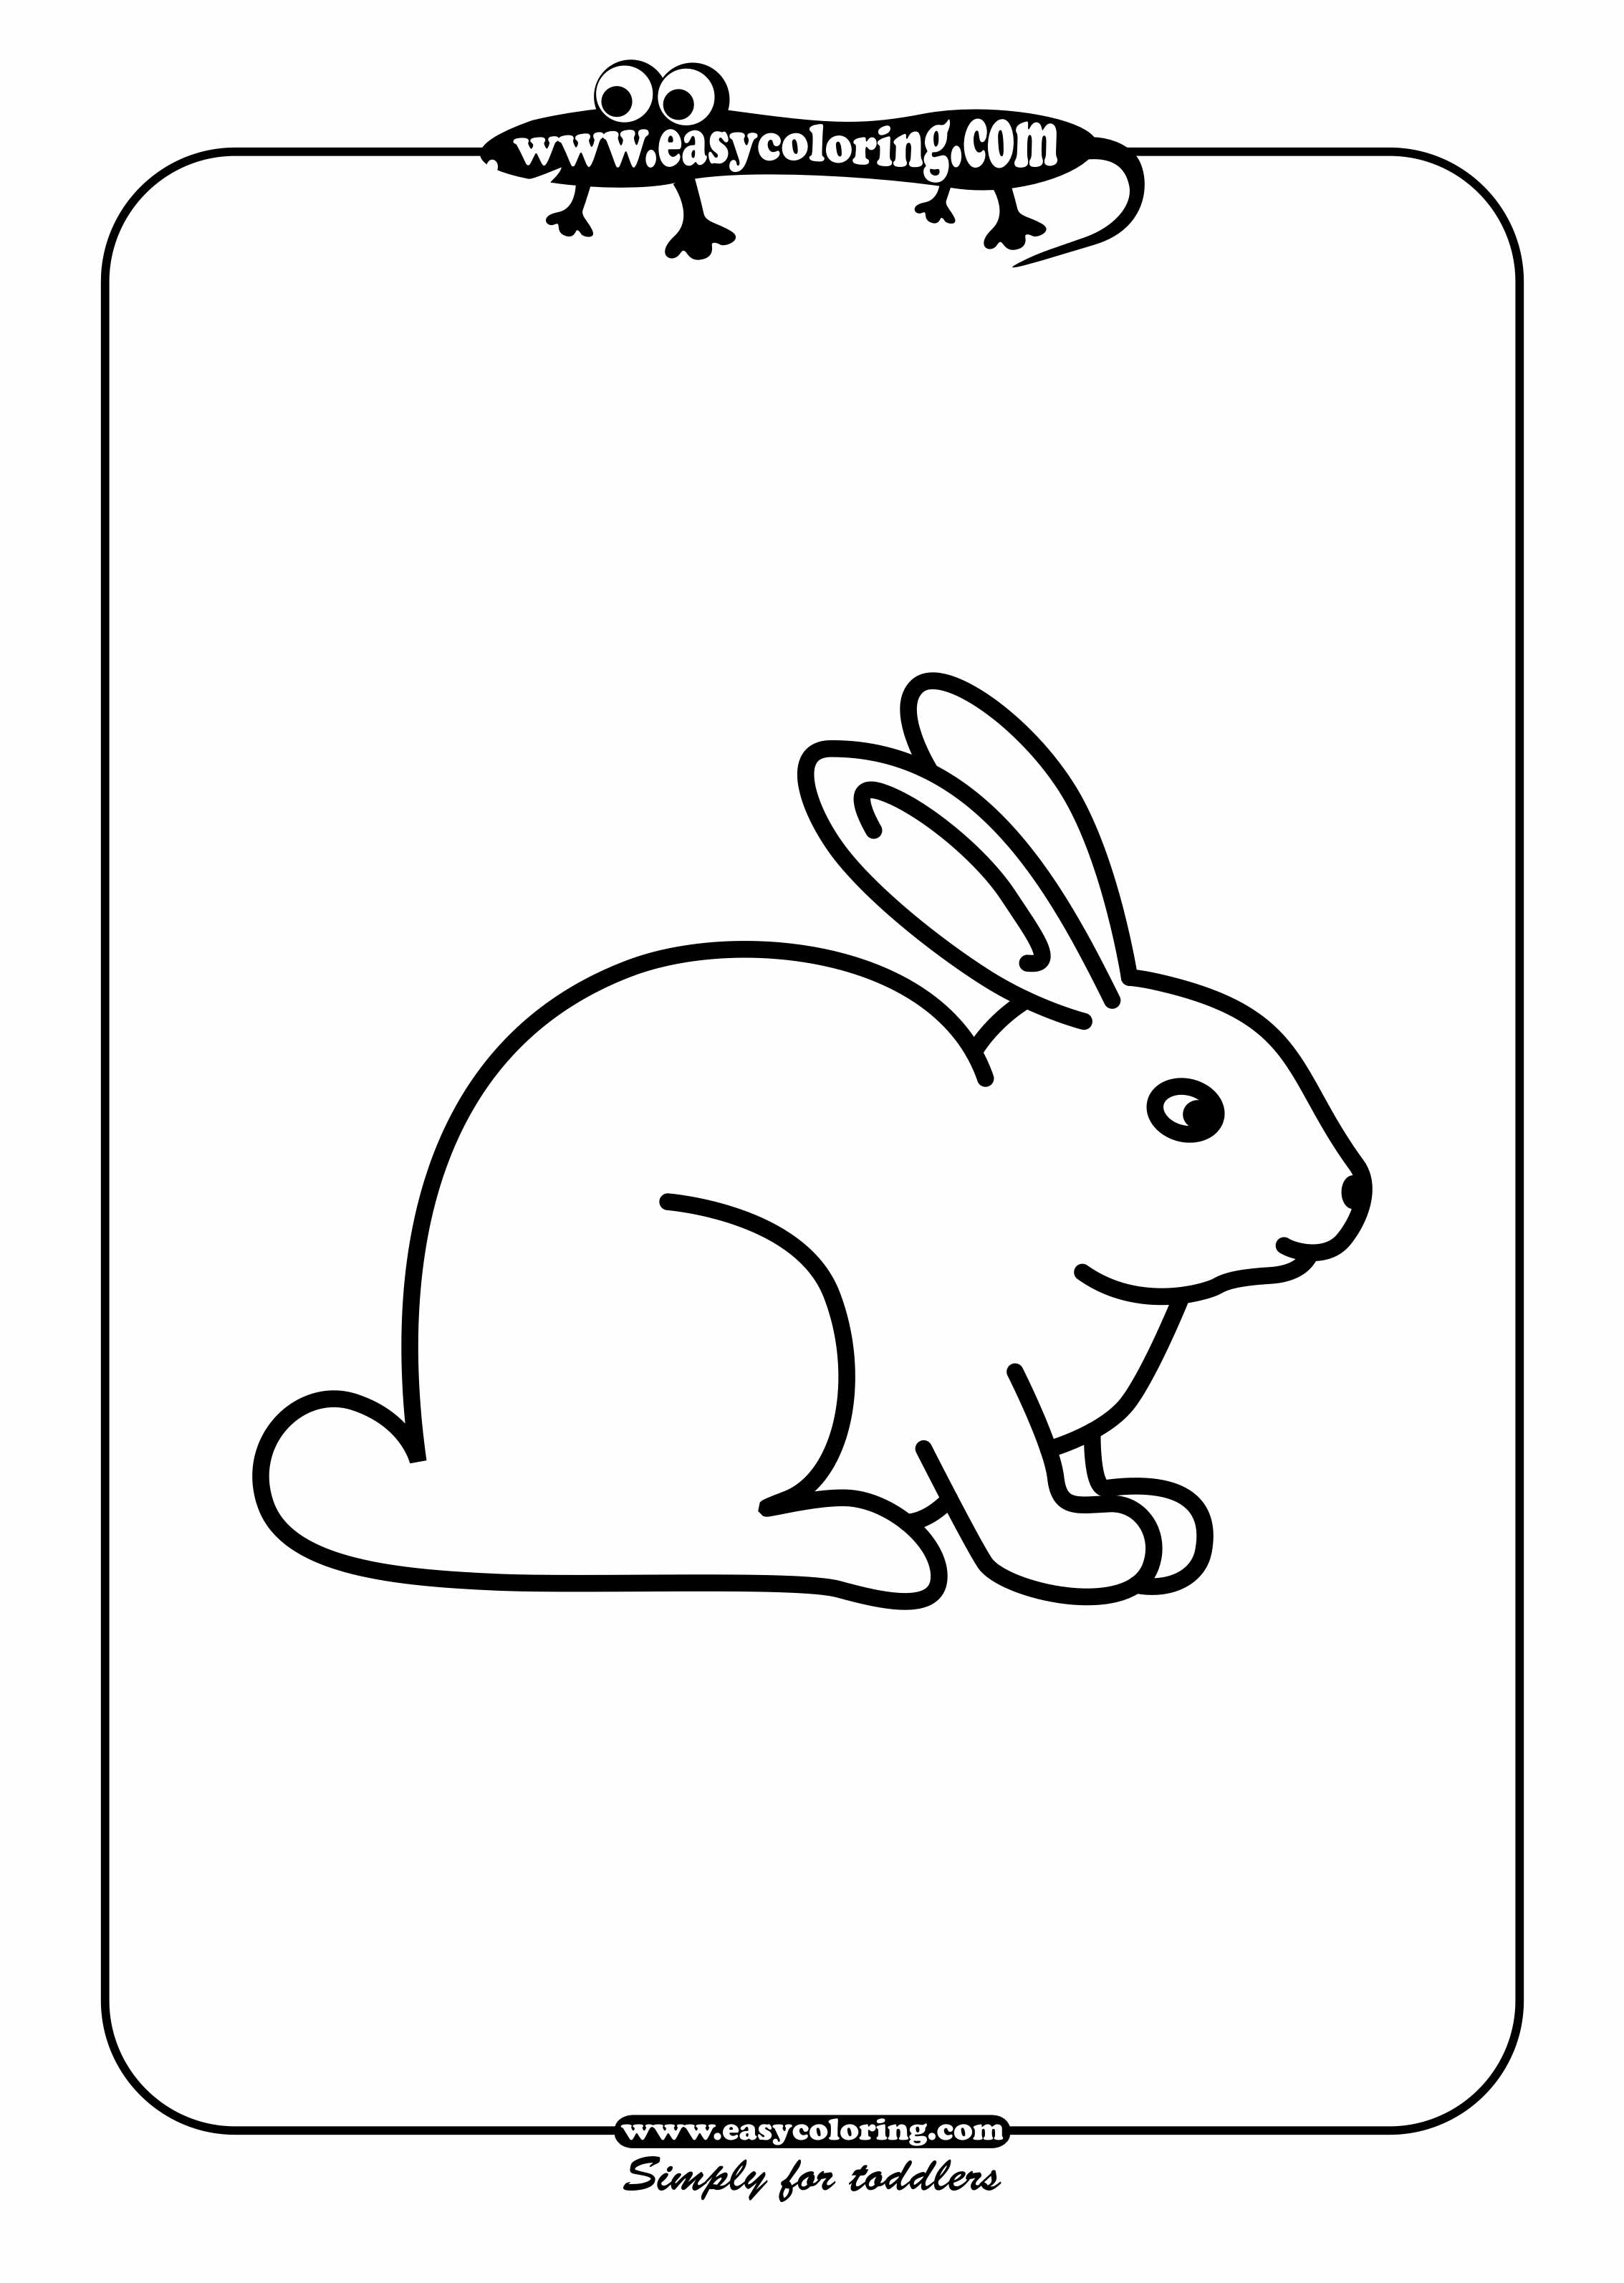 Animal Coloring Pages Easy : animal, coloring, pages, Simple, Animal, Coloring, Pages, Kcsuttons